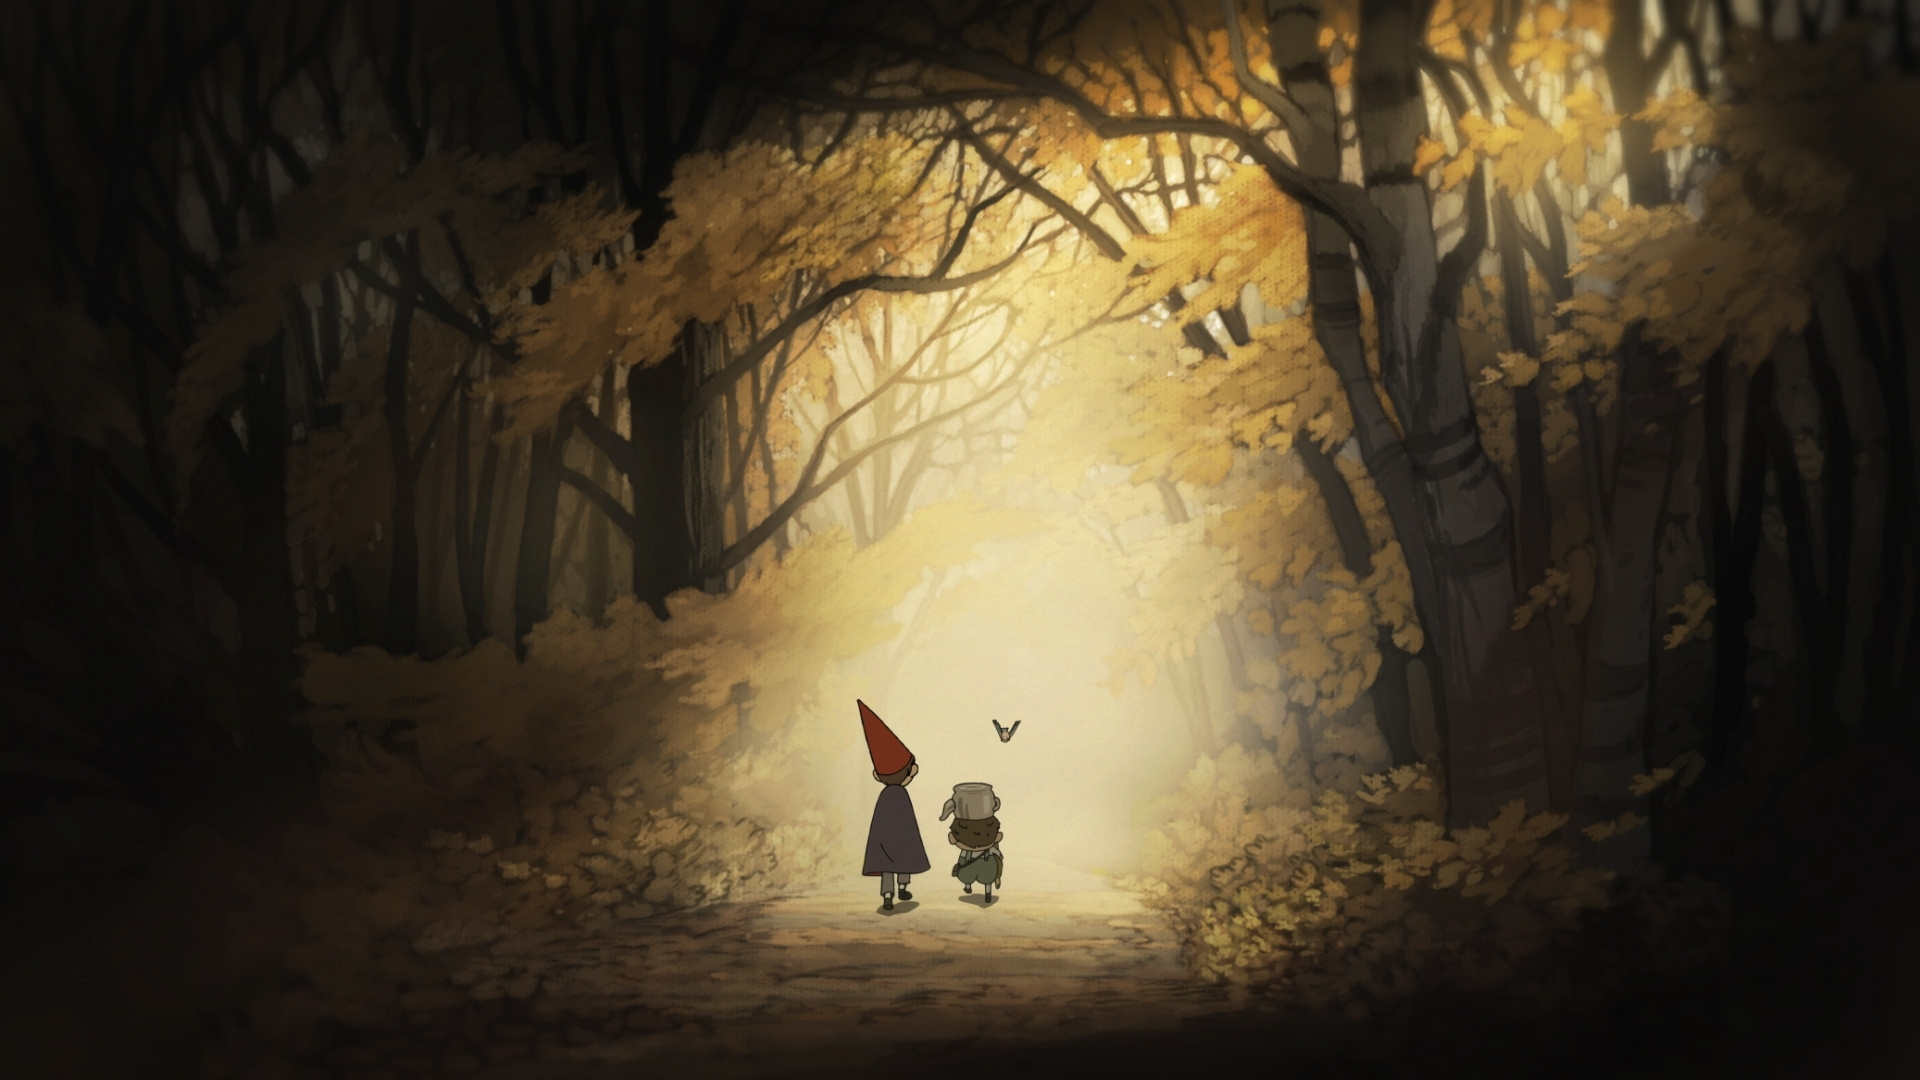 10 Top Over The Garden Wall Wallpaper FULL HD 1080p For PC Desktop